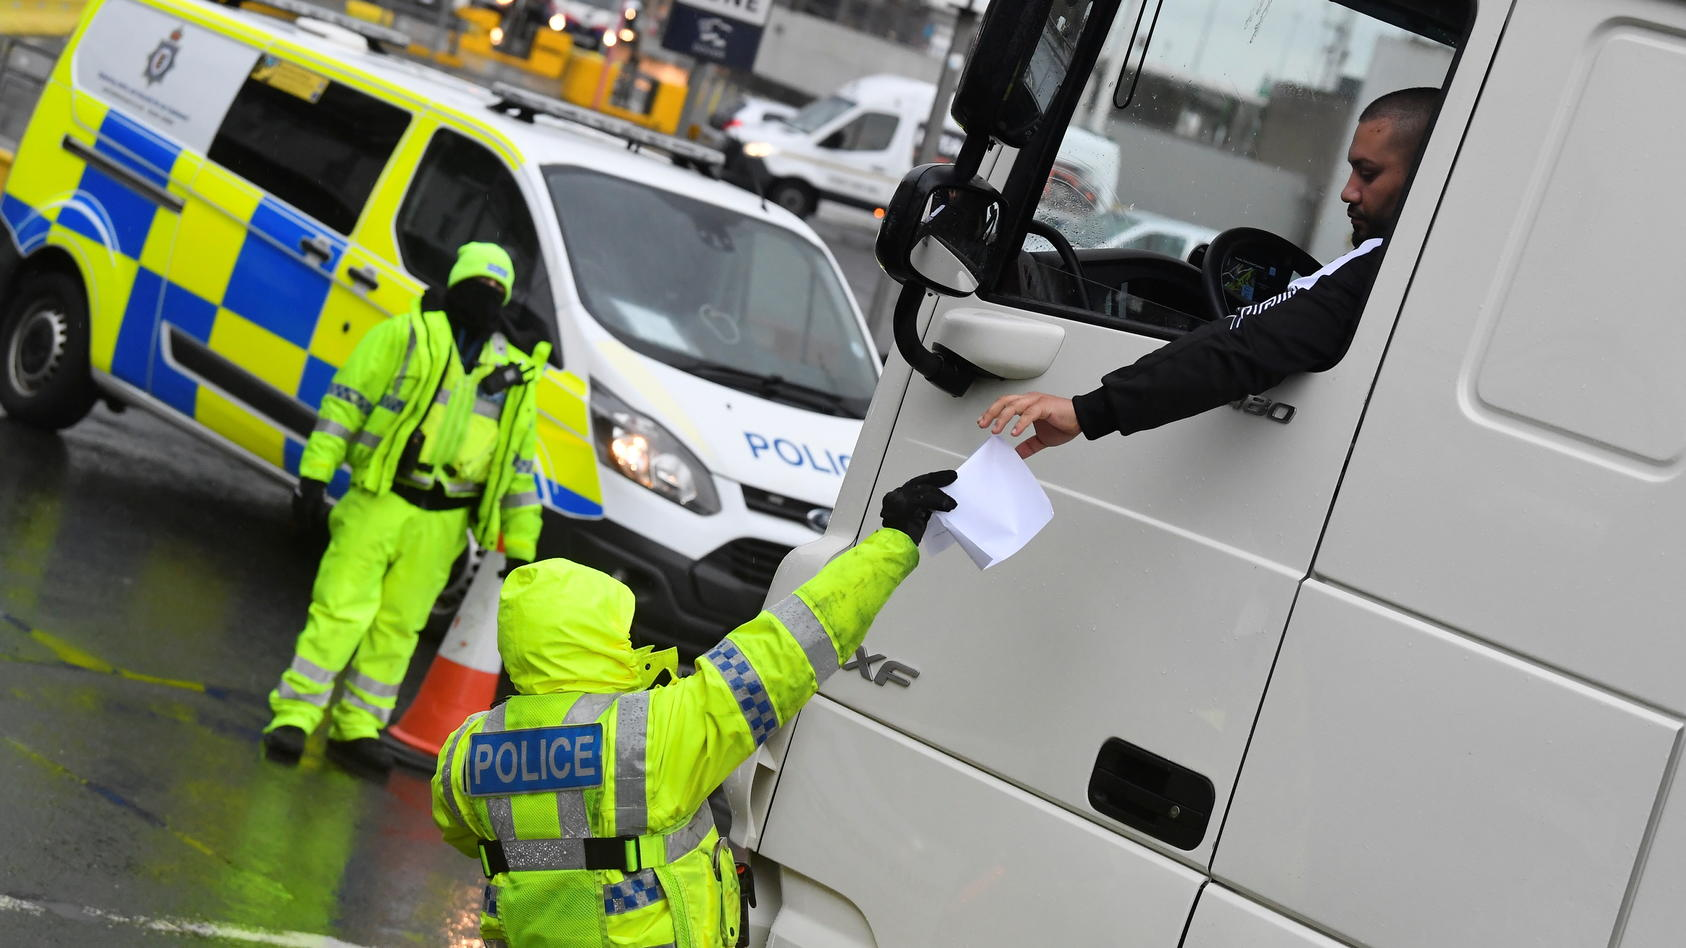 A police officer checks the documentation of a lorry driver upon his arrival to the Port of Dover